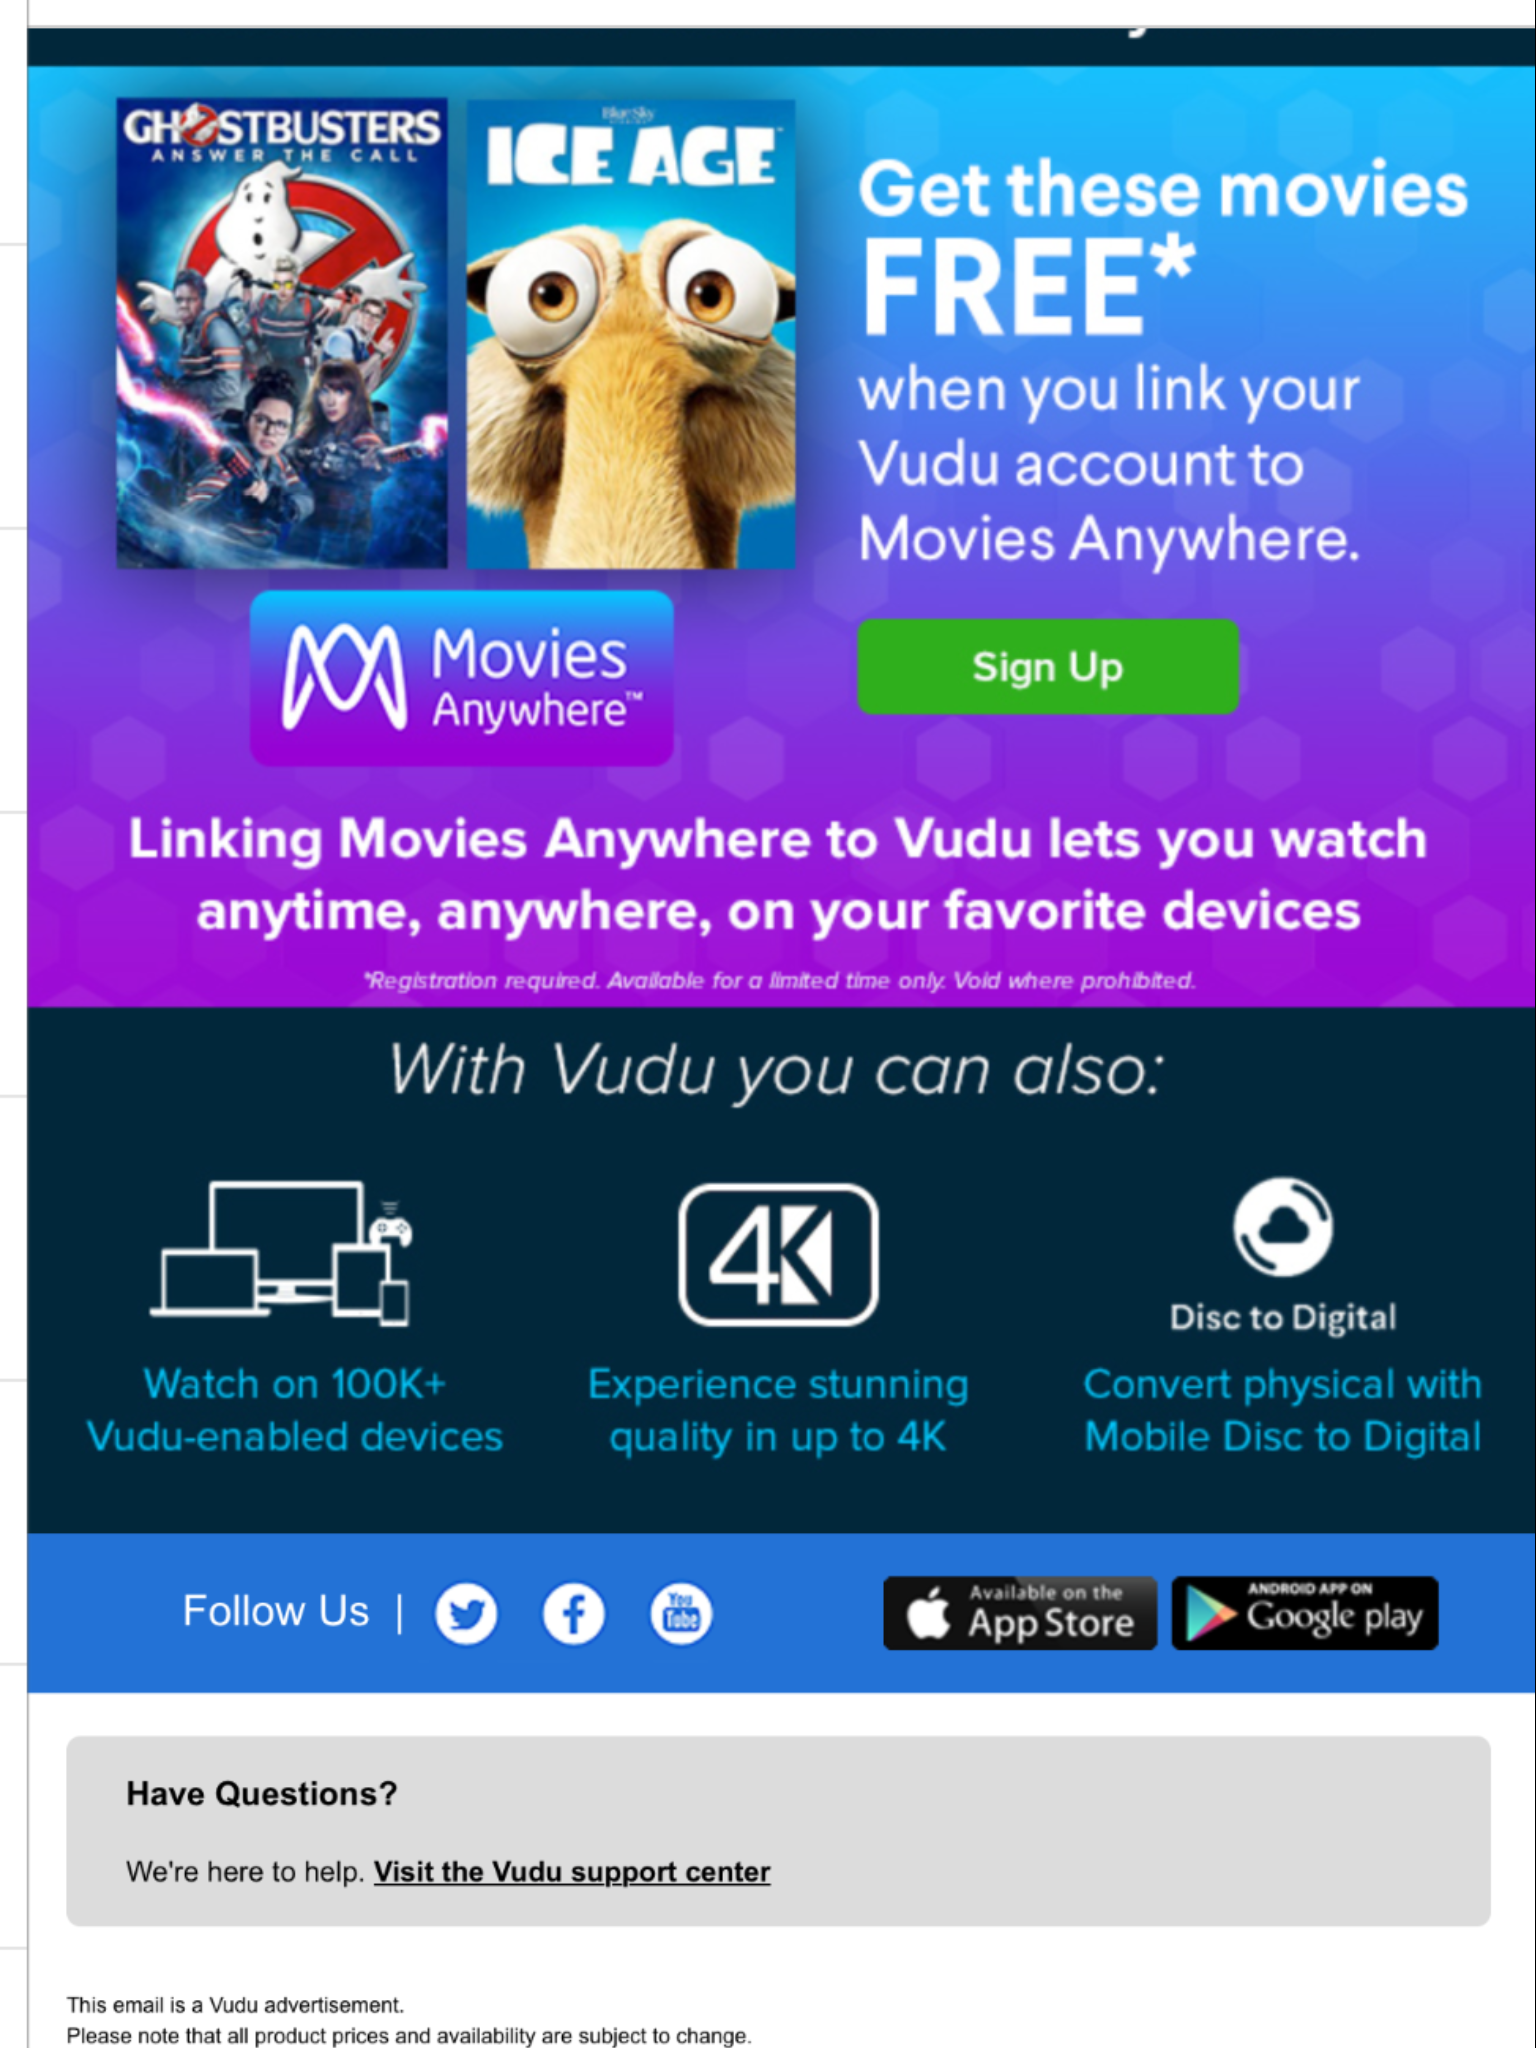 VUDU, 2 Free Movies by linking to Movies Anywhere, via Email